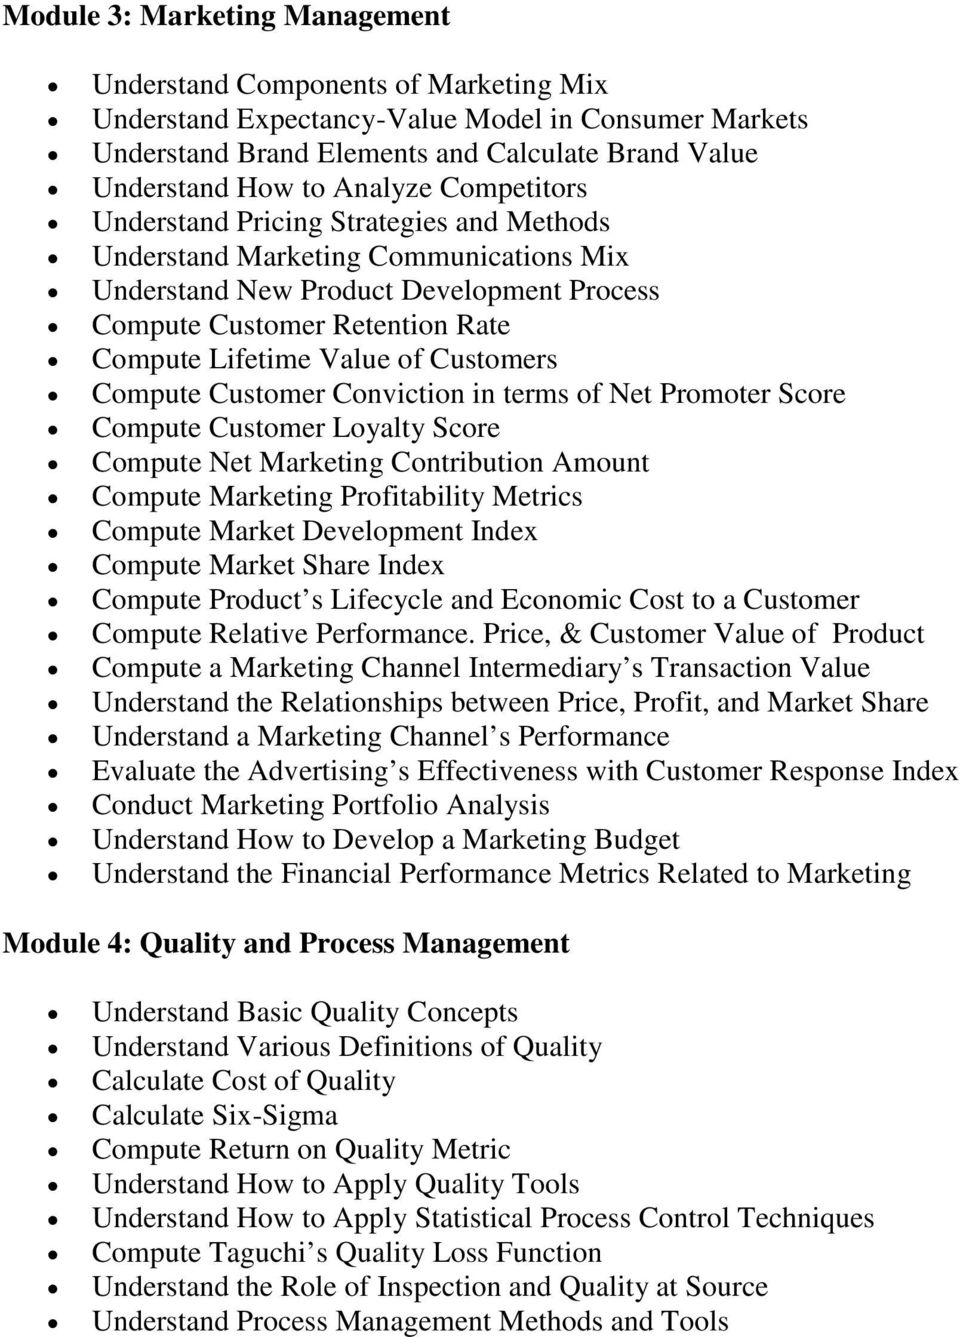 of Customers Compute Customer Conviction in terms of Net Promoter Score Compute Customer Loyalty Score Compute Net Marketing Contribution Amount Compute Marketing Profitability Metrics Compute Market